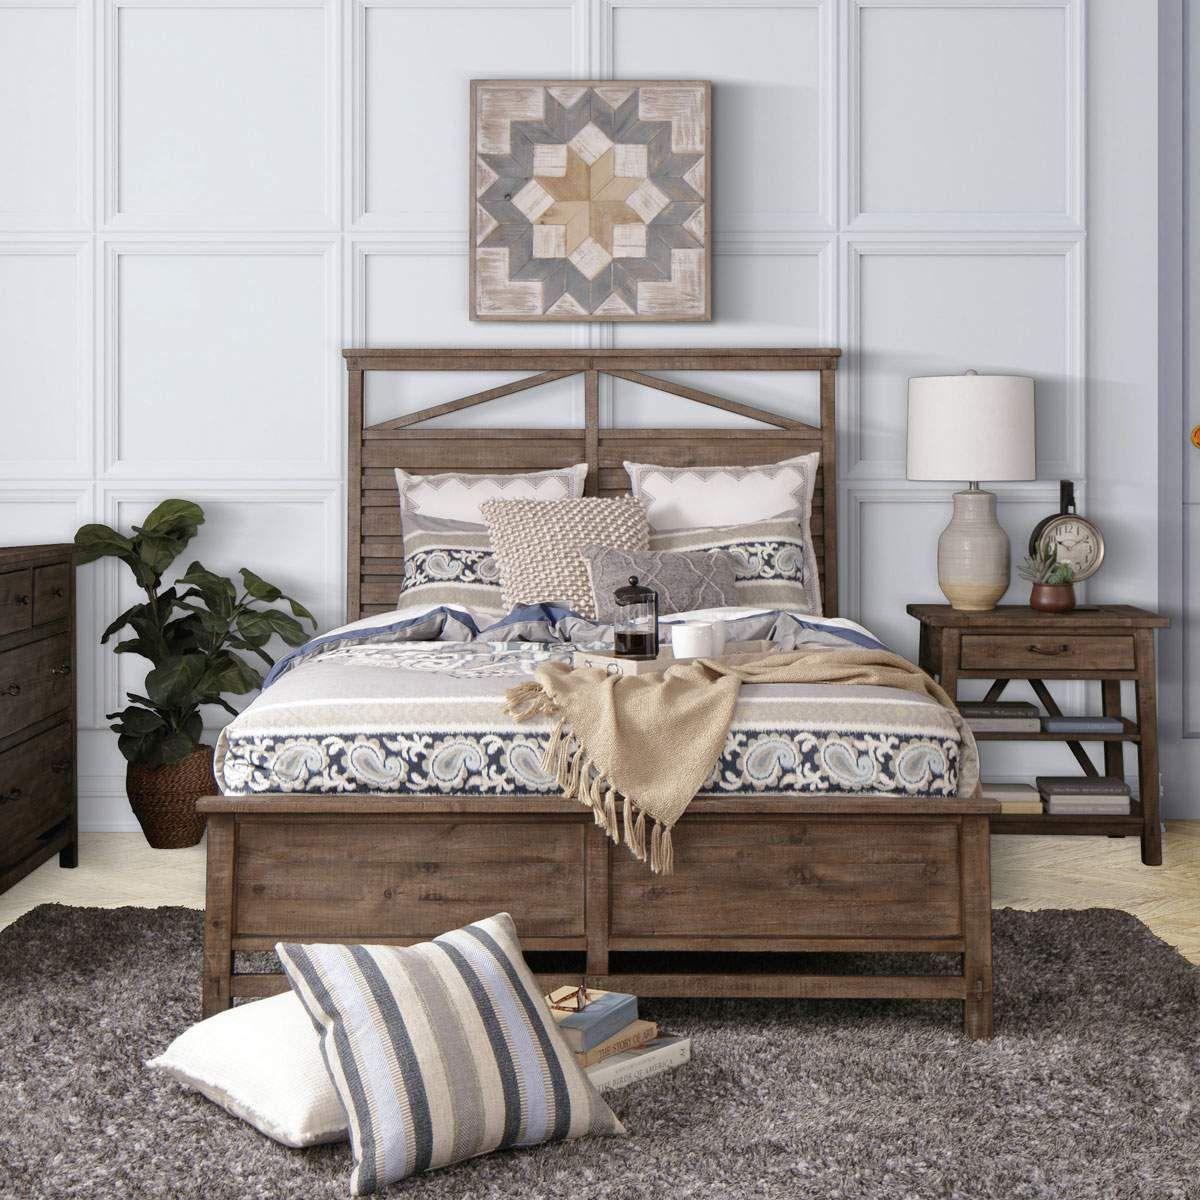 A Toasty Weathered Nutmeg Wood Finish Warms Up Thick Pine Solids And Veneers In The Affordable Bedroom Furniture Bedroom Furniture Sets Farmhouse Bedroom Decor